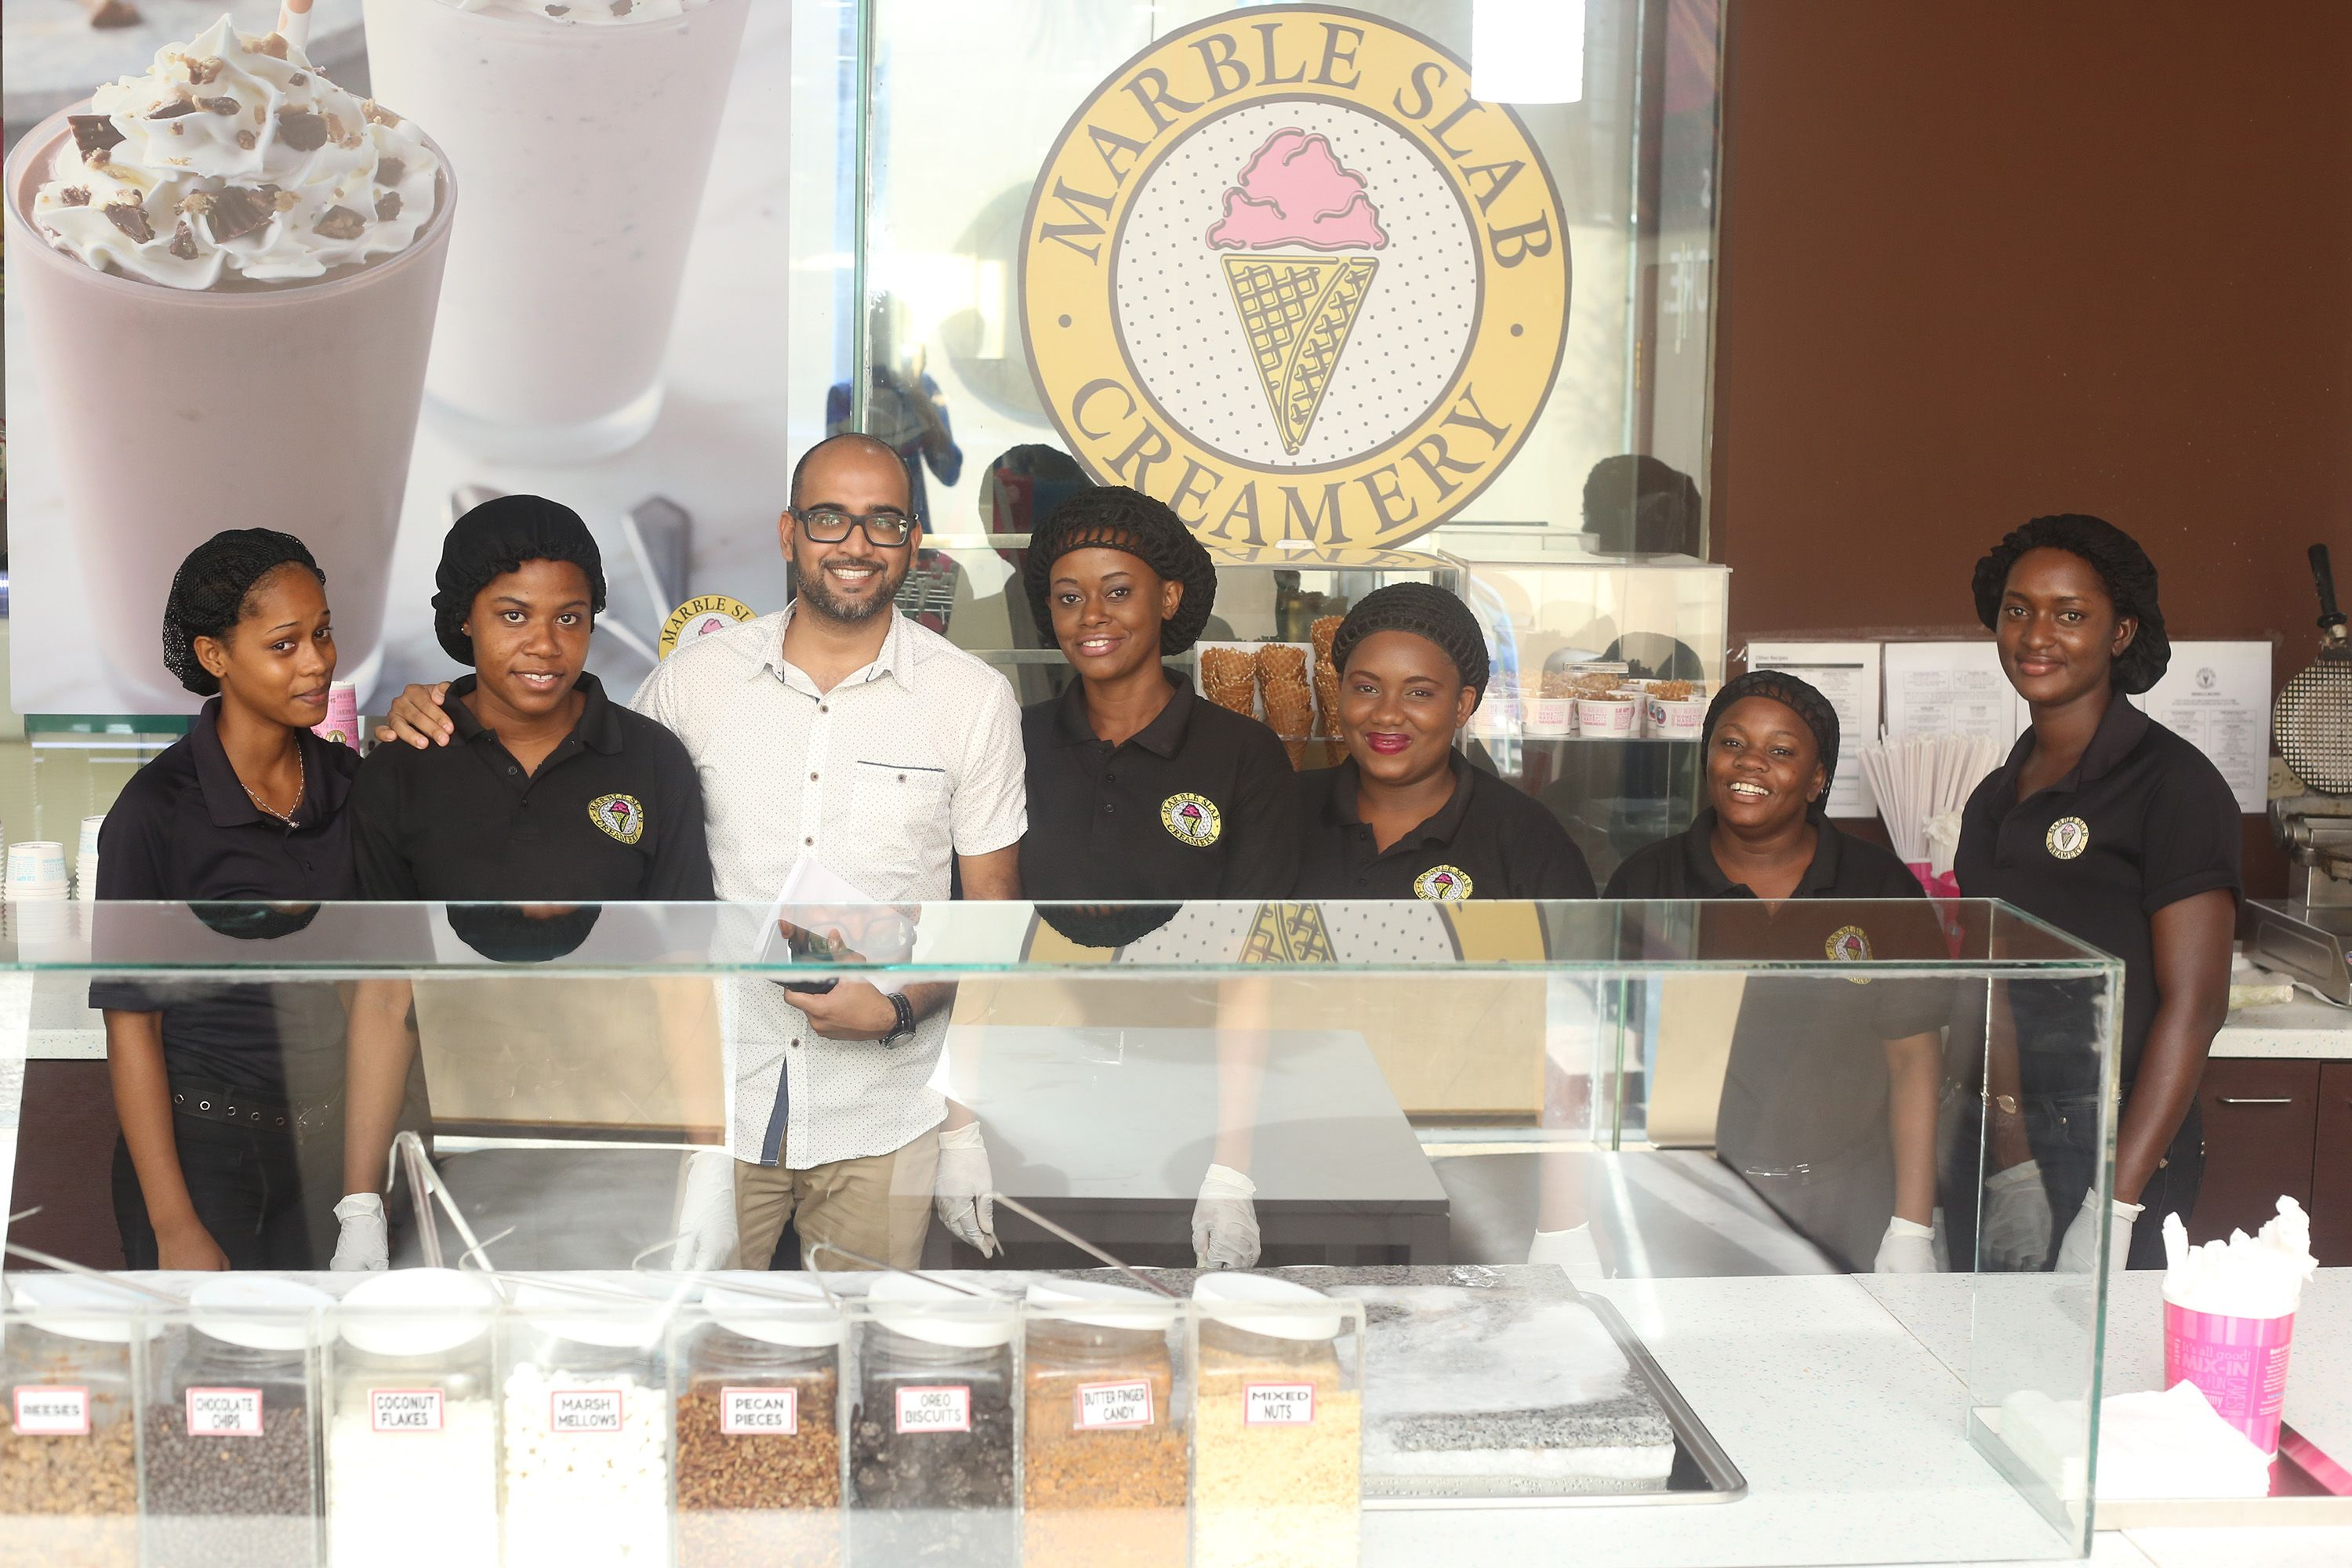 Marble Slab Logo - Marble Slab launches Camp St outlet – Stabroek News